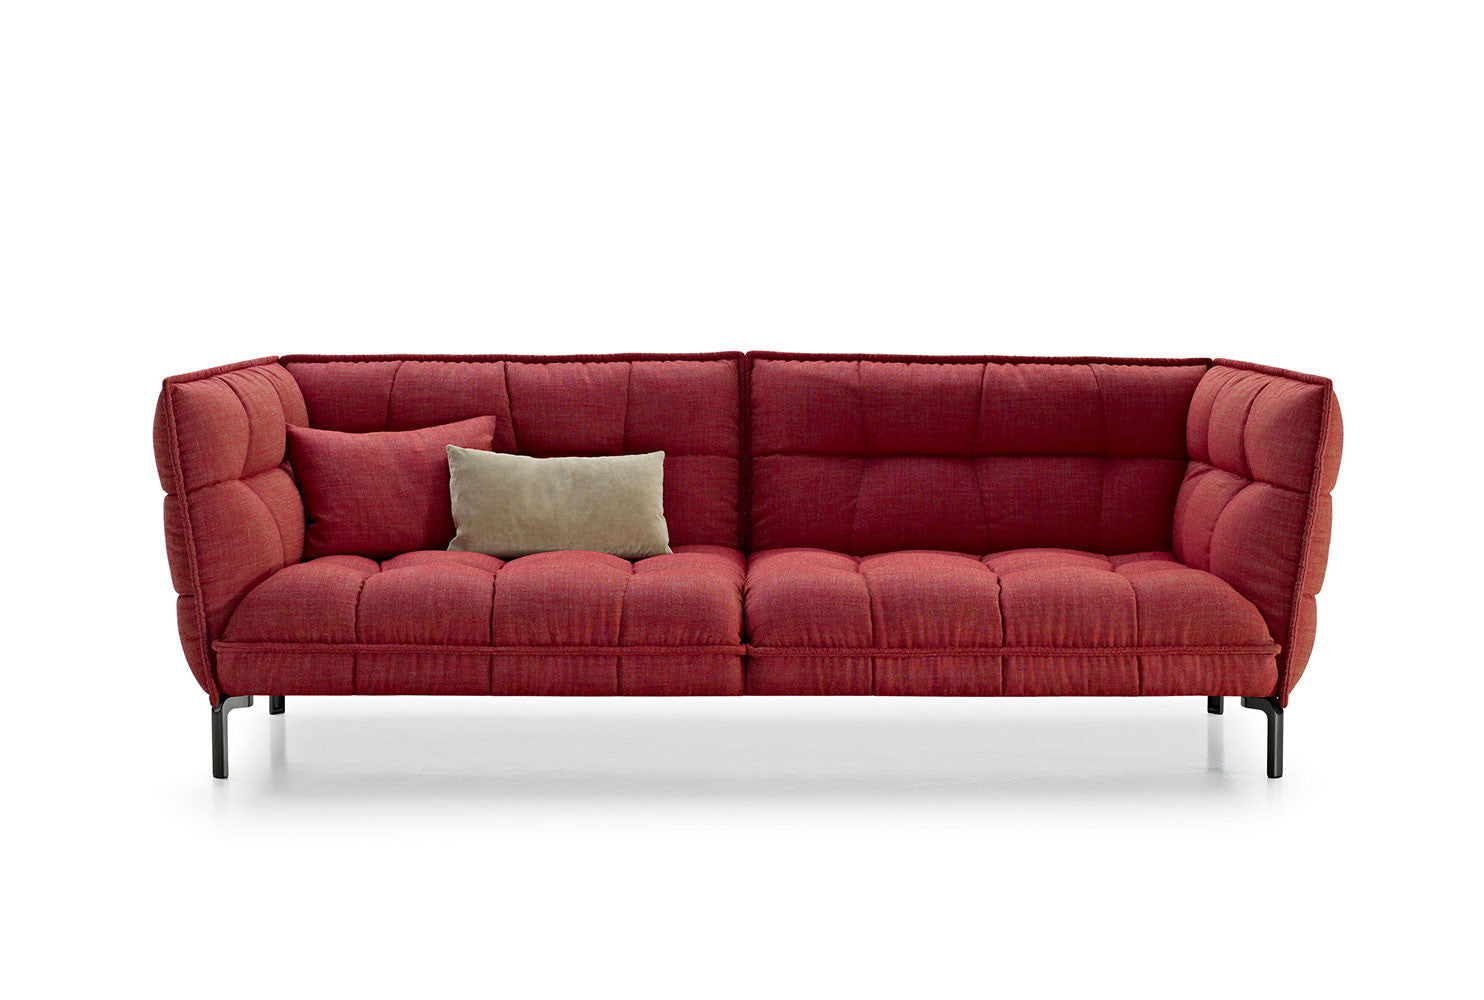 B B Husk Sofa Reproduction The Modern Source